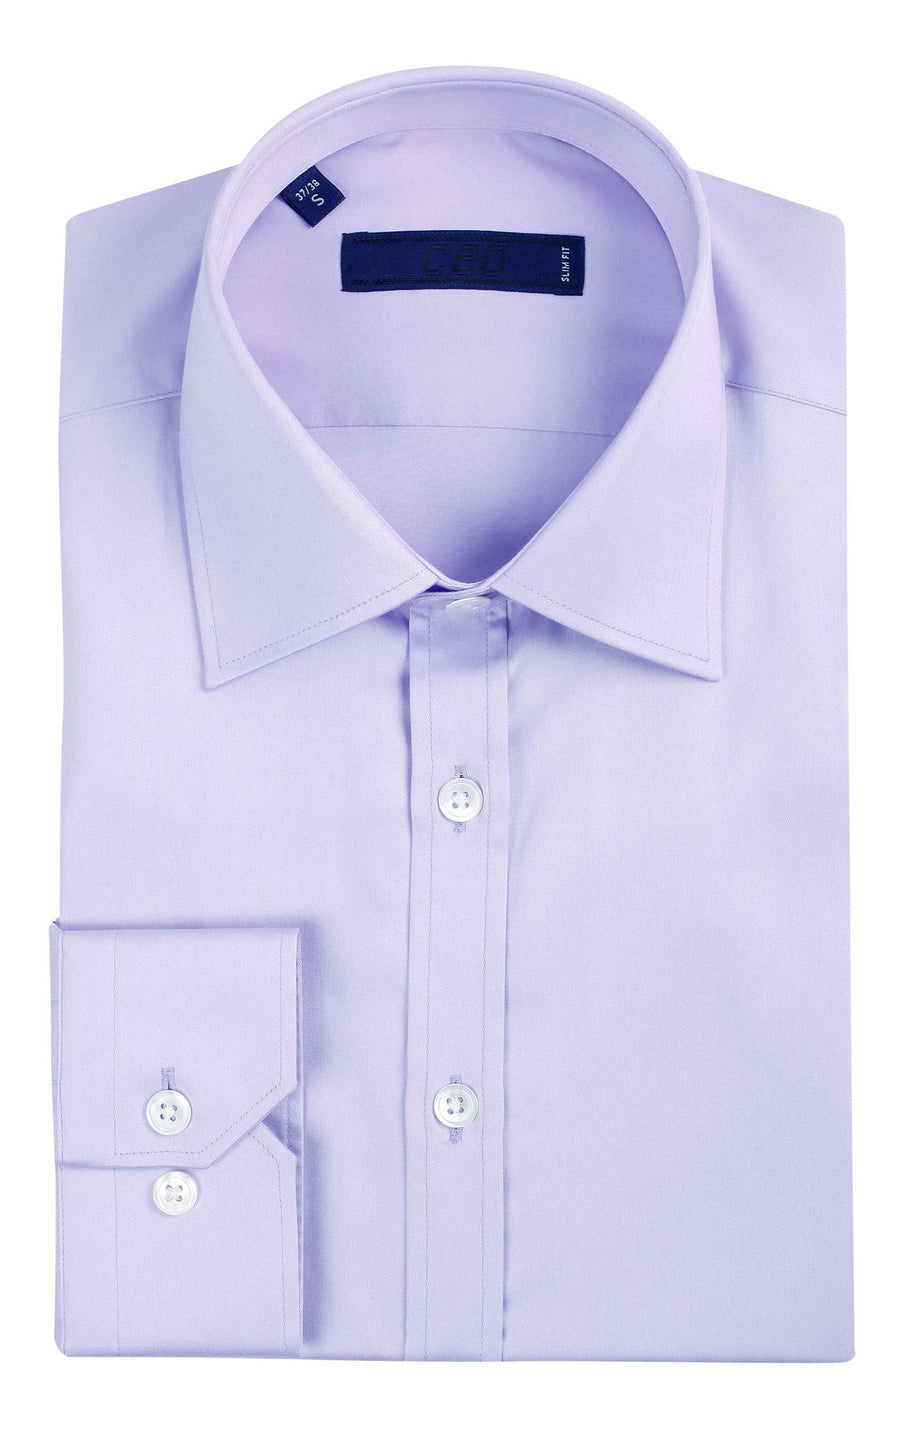 CEO Slim Fit Shirt in Lilac - Ron Bennett Menswear